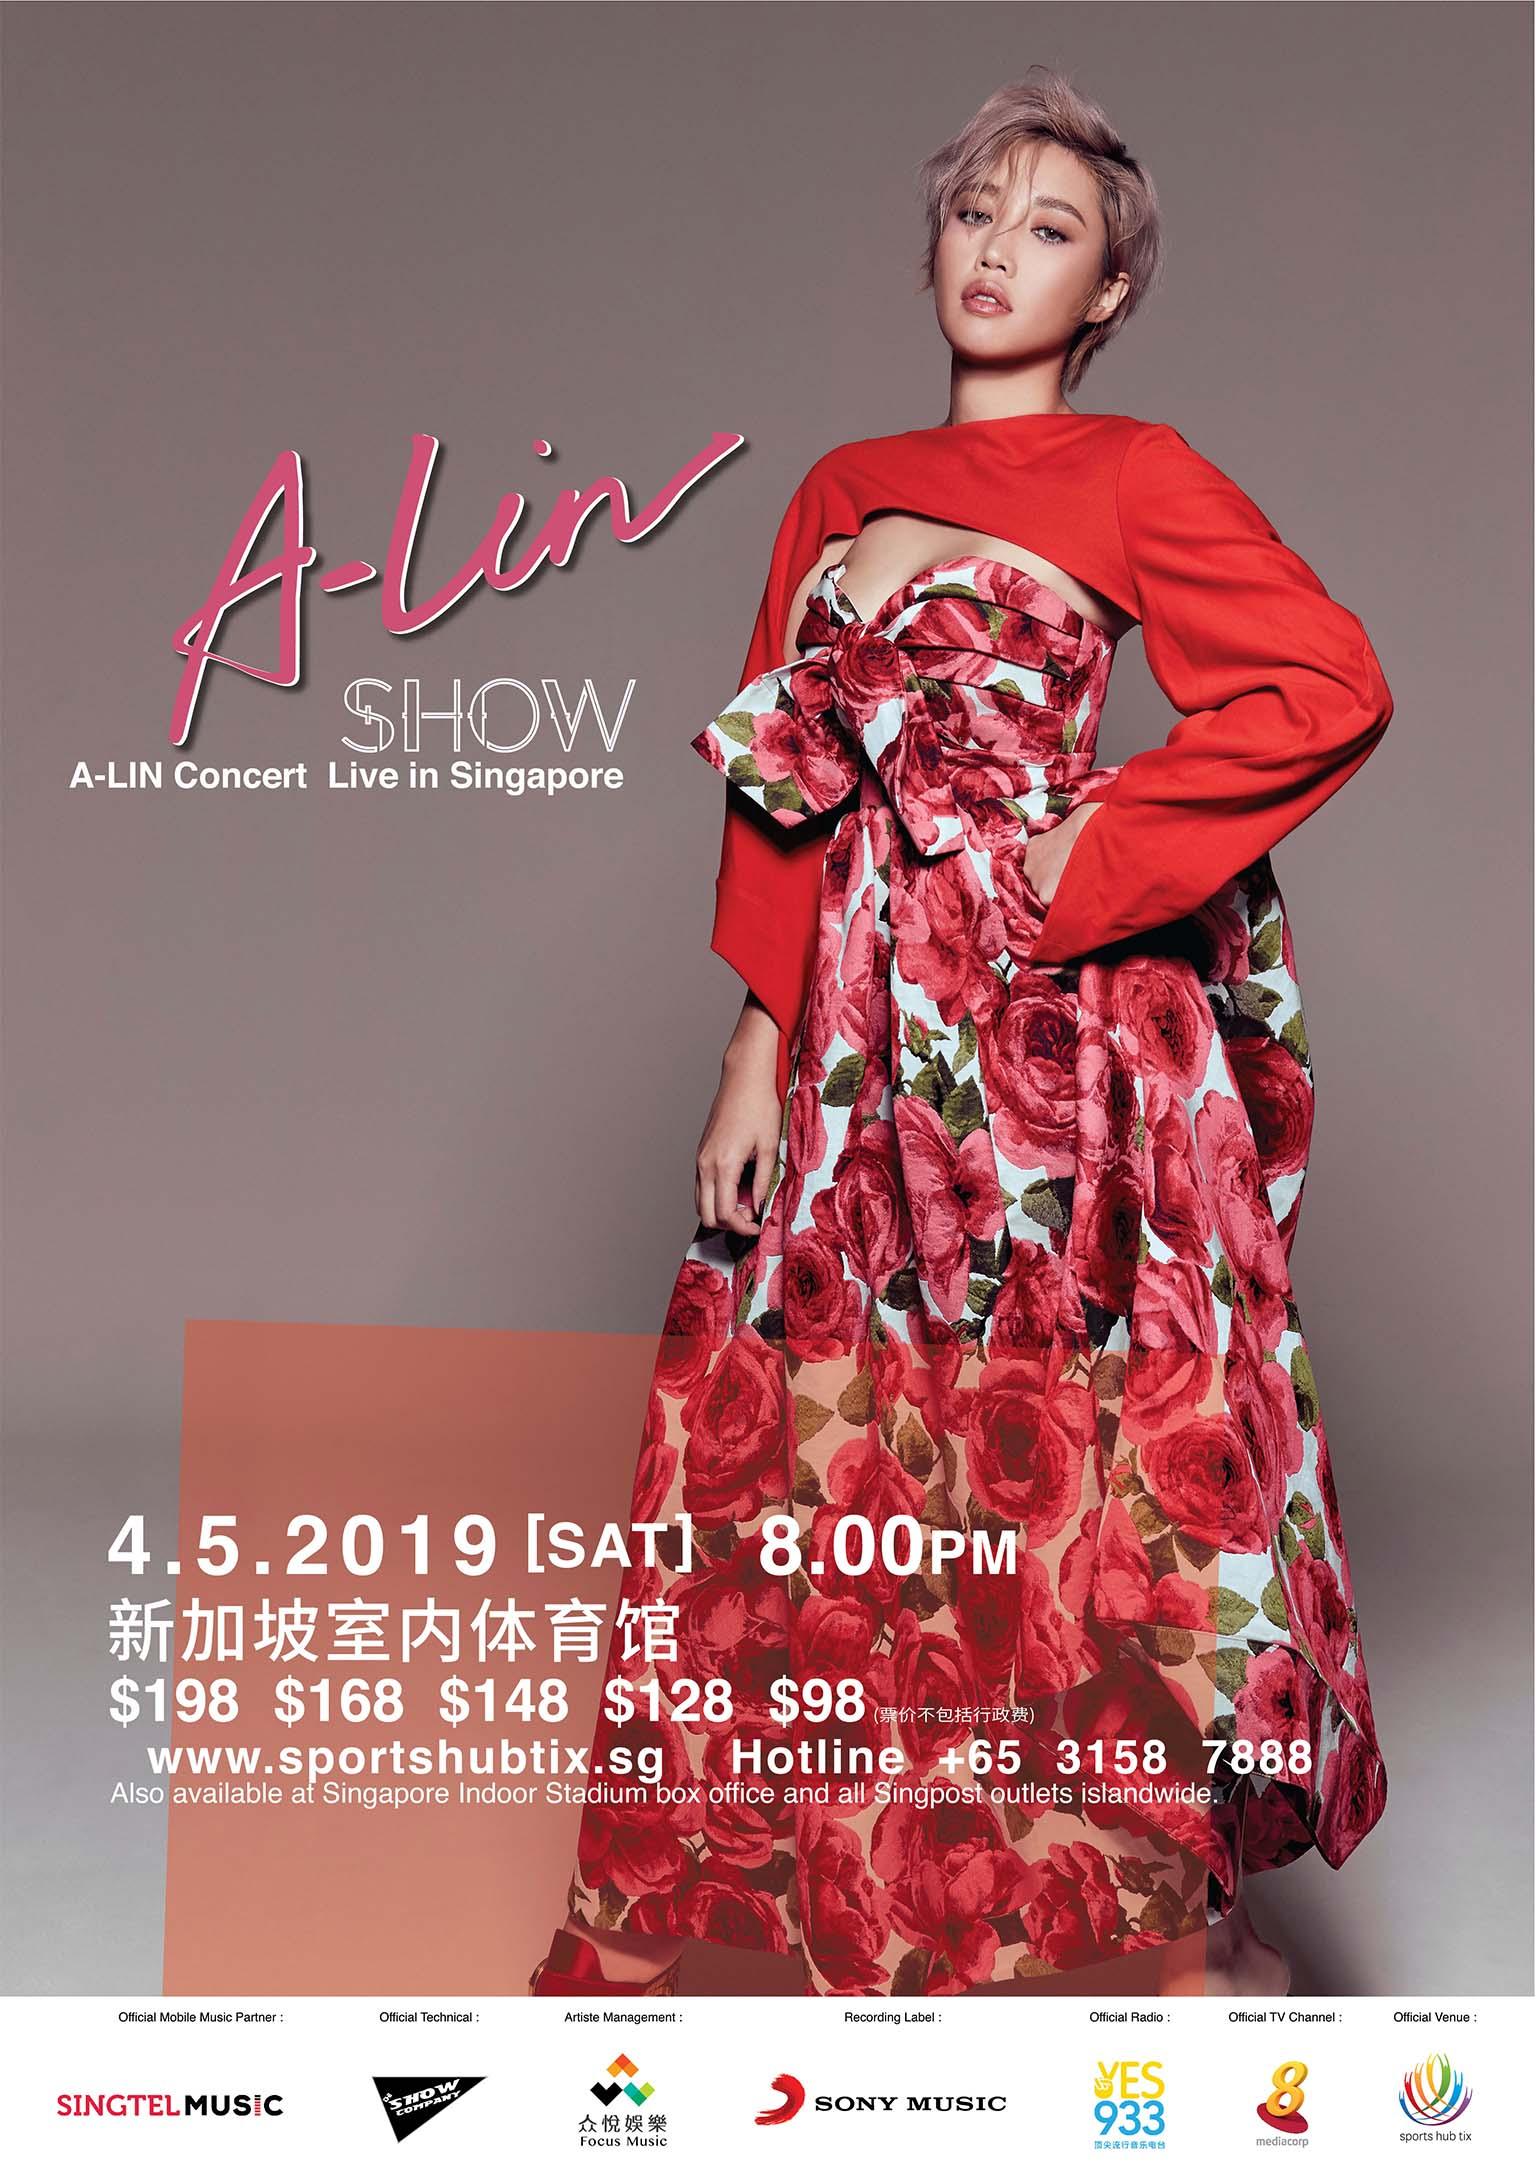 A-LIN SHOW LIVE IN SINGAPORE